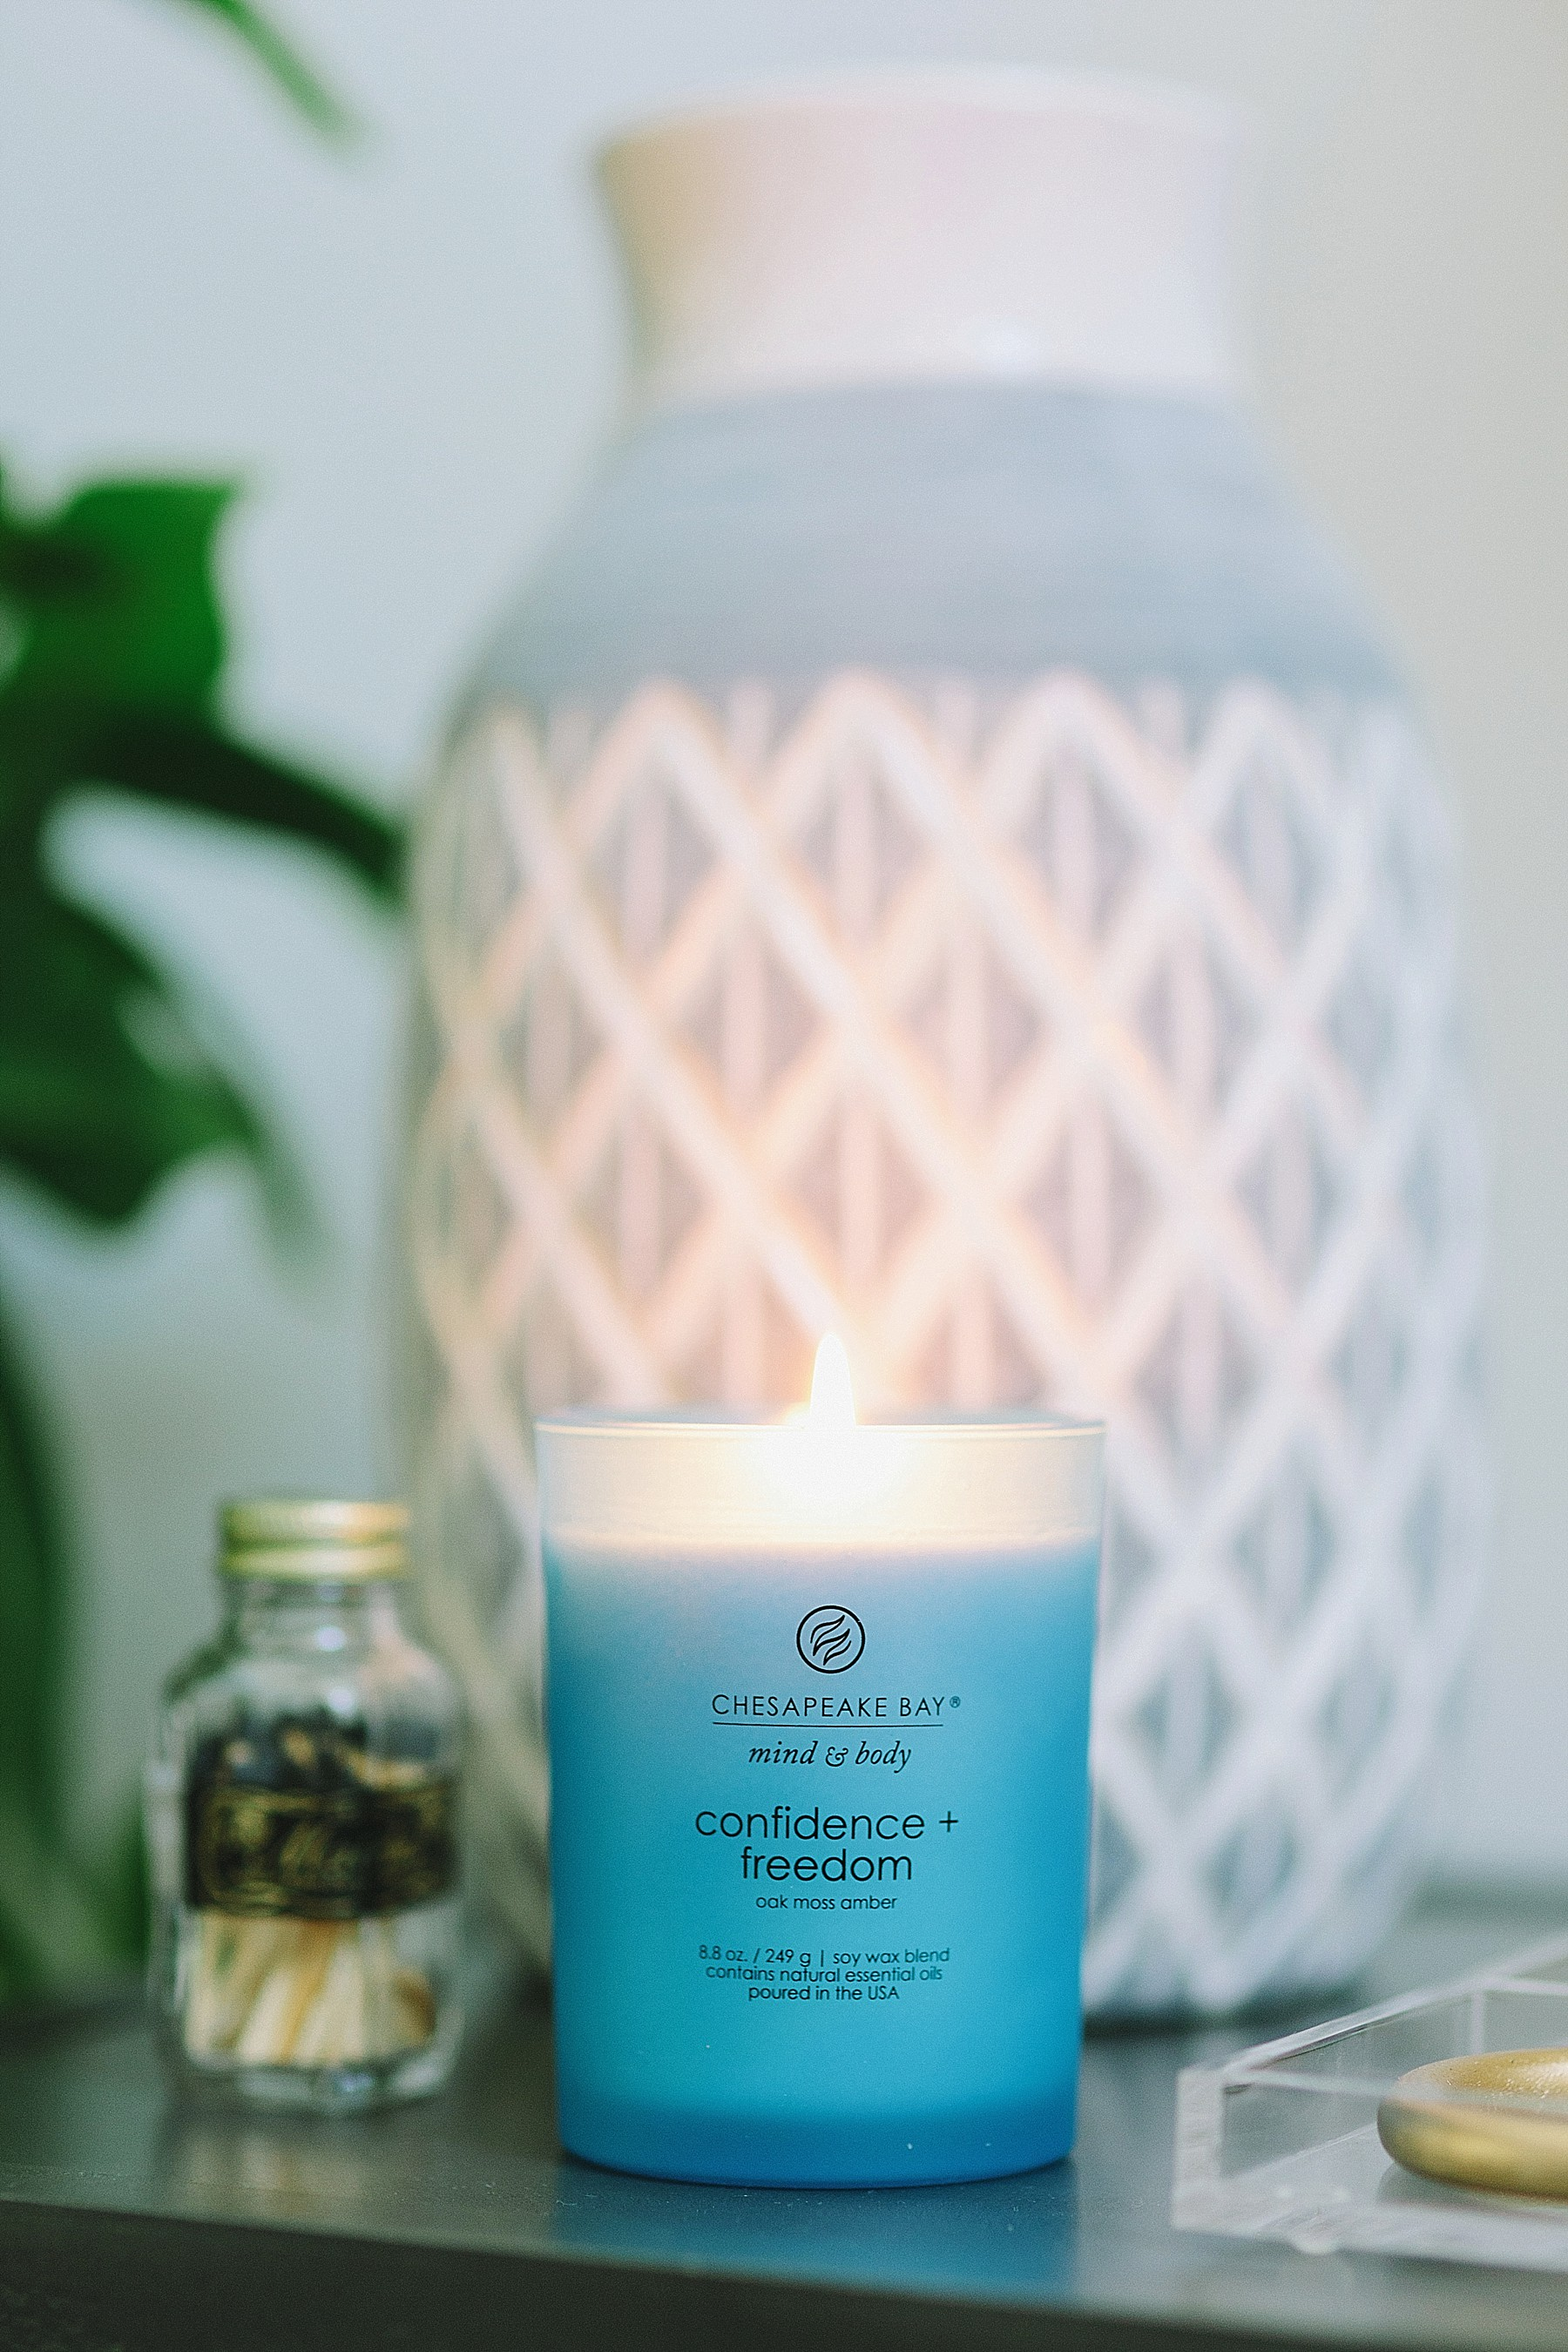 Chesapeake Bay Candle: Mind & Body candle